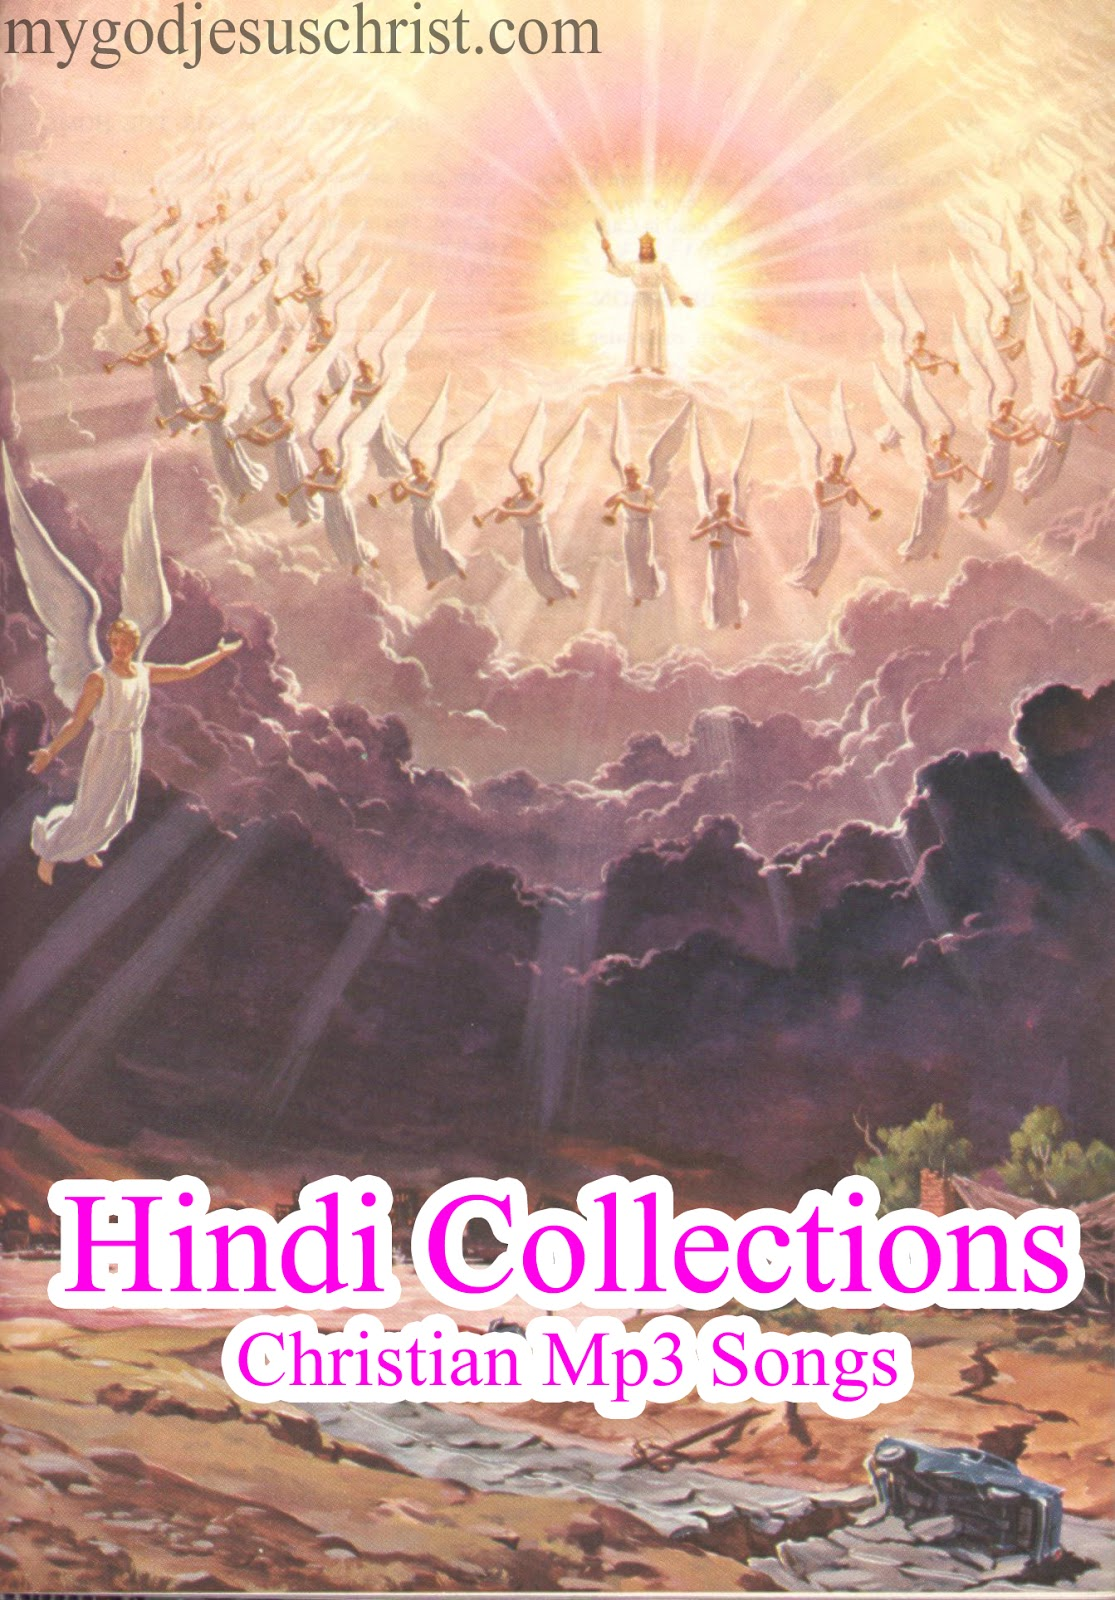 Hindi Collections Christian Mp3 Songs Free Download | Christian